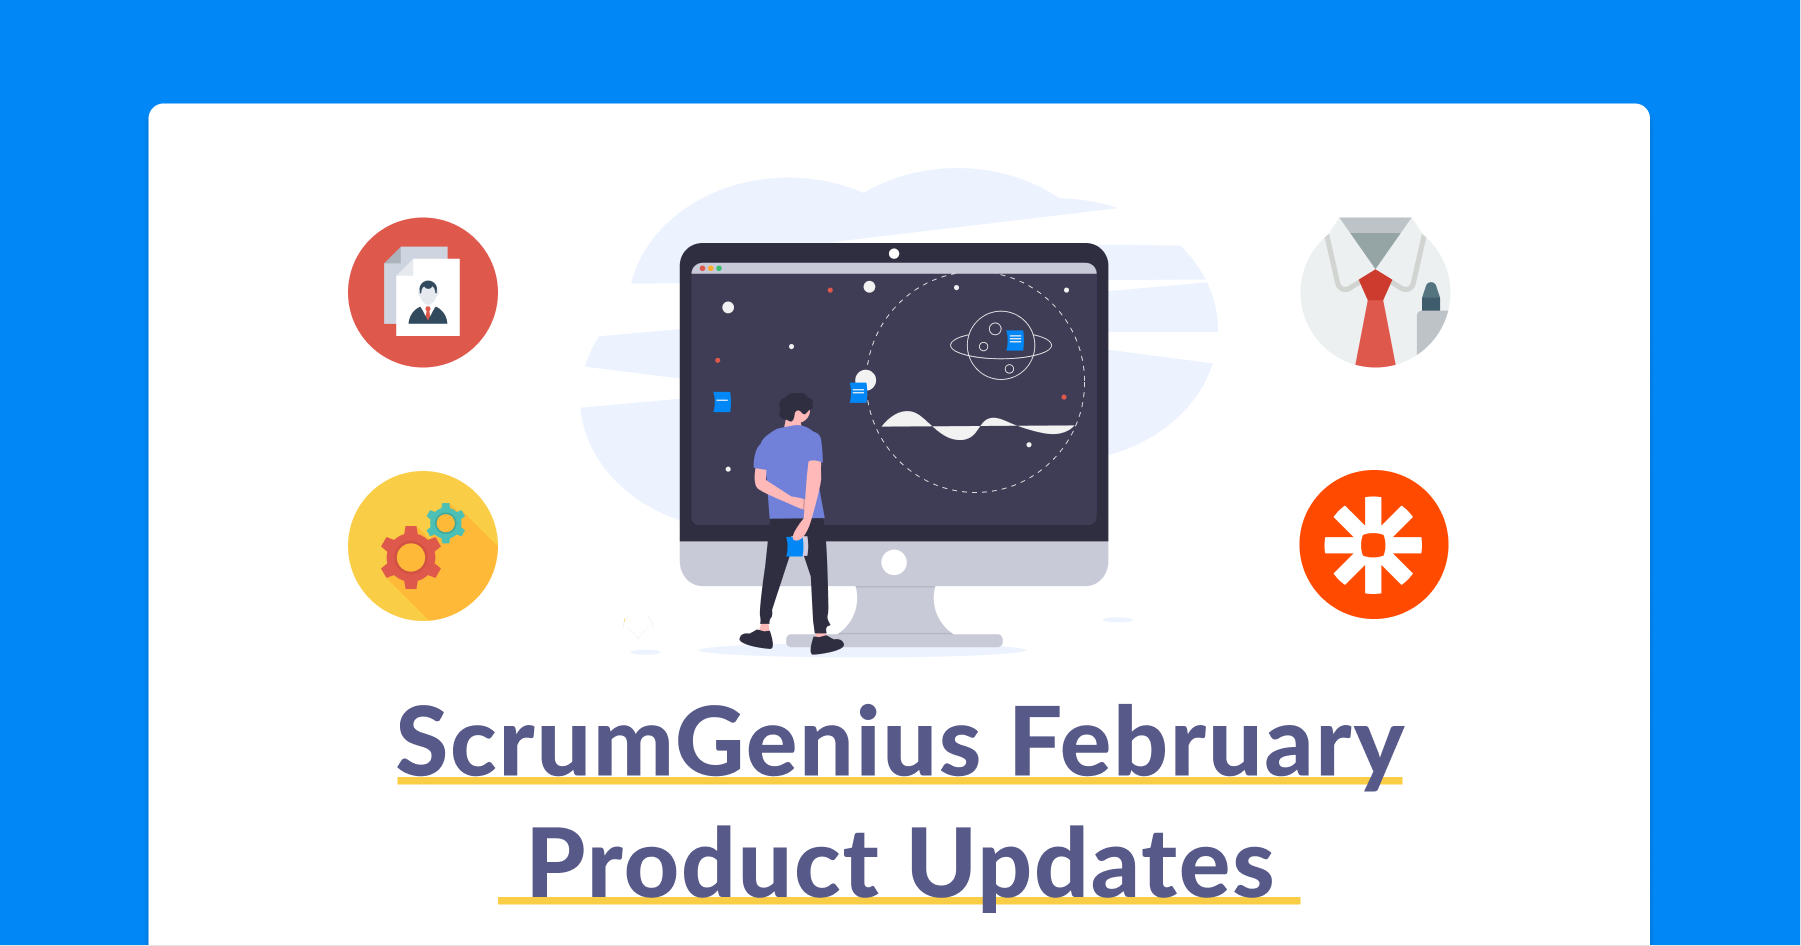 ScrumGenius latest product updates